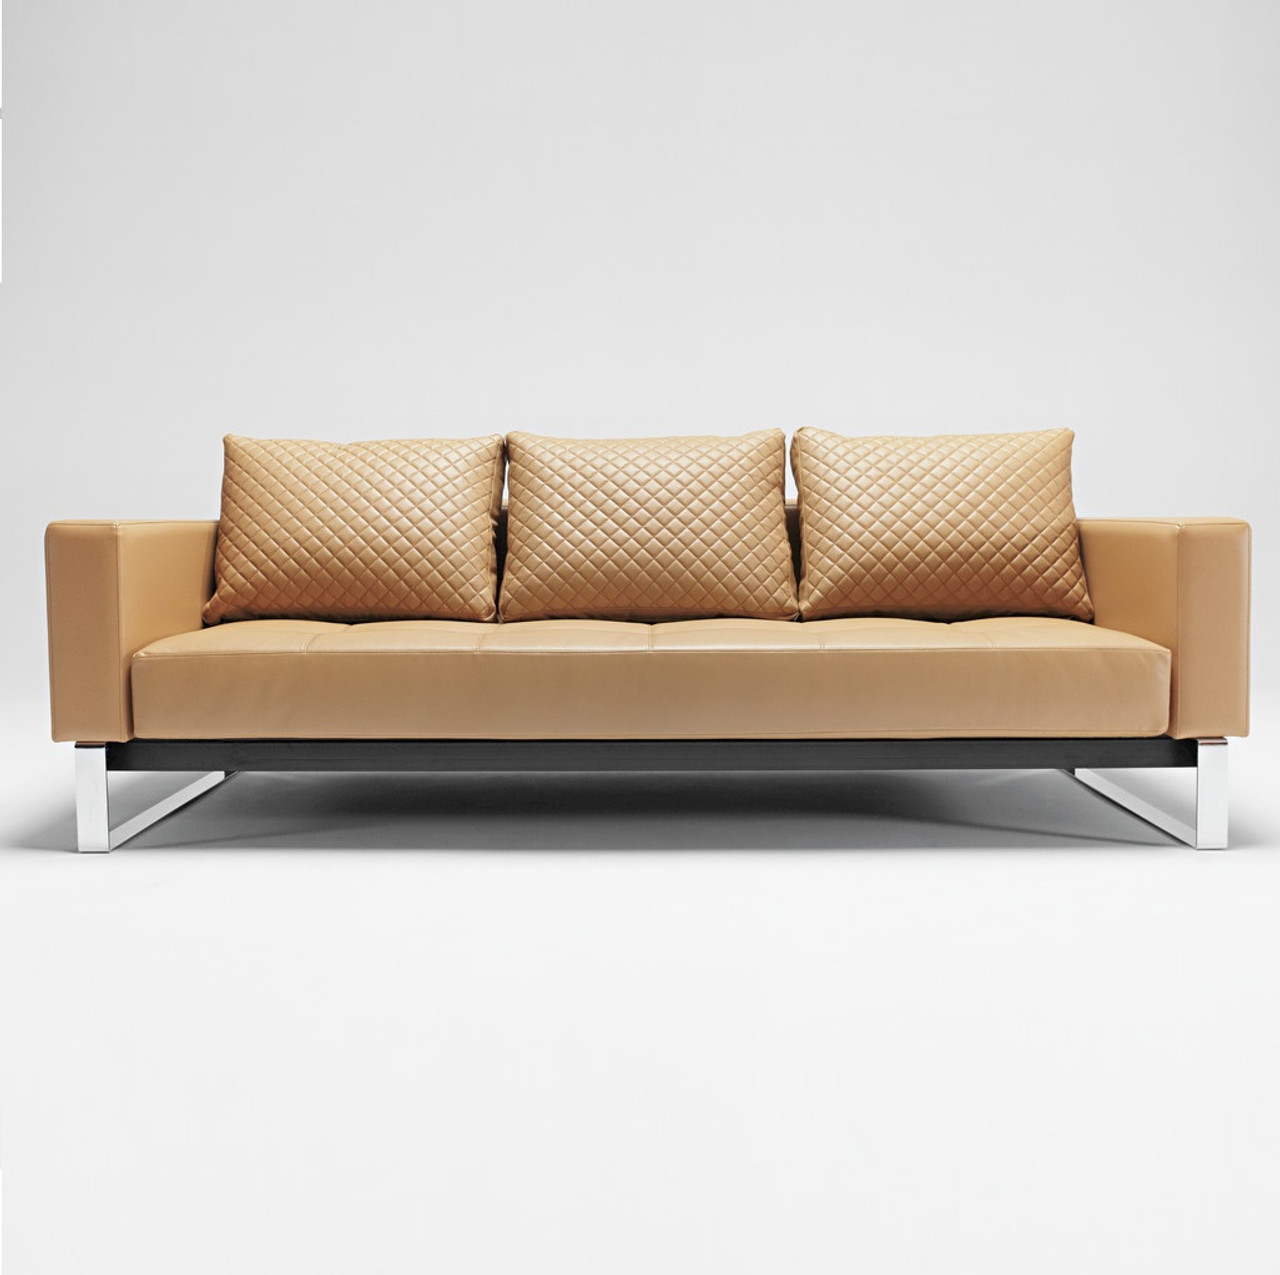 Cassius Q Deluxe Tan Leather Sleeper Sofa Chrome Legs